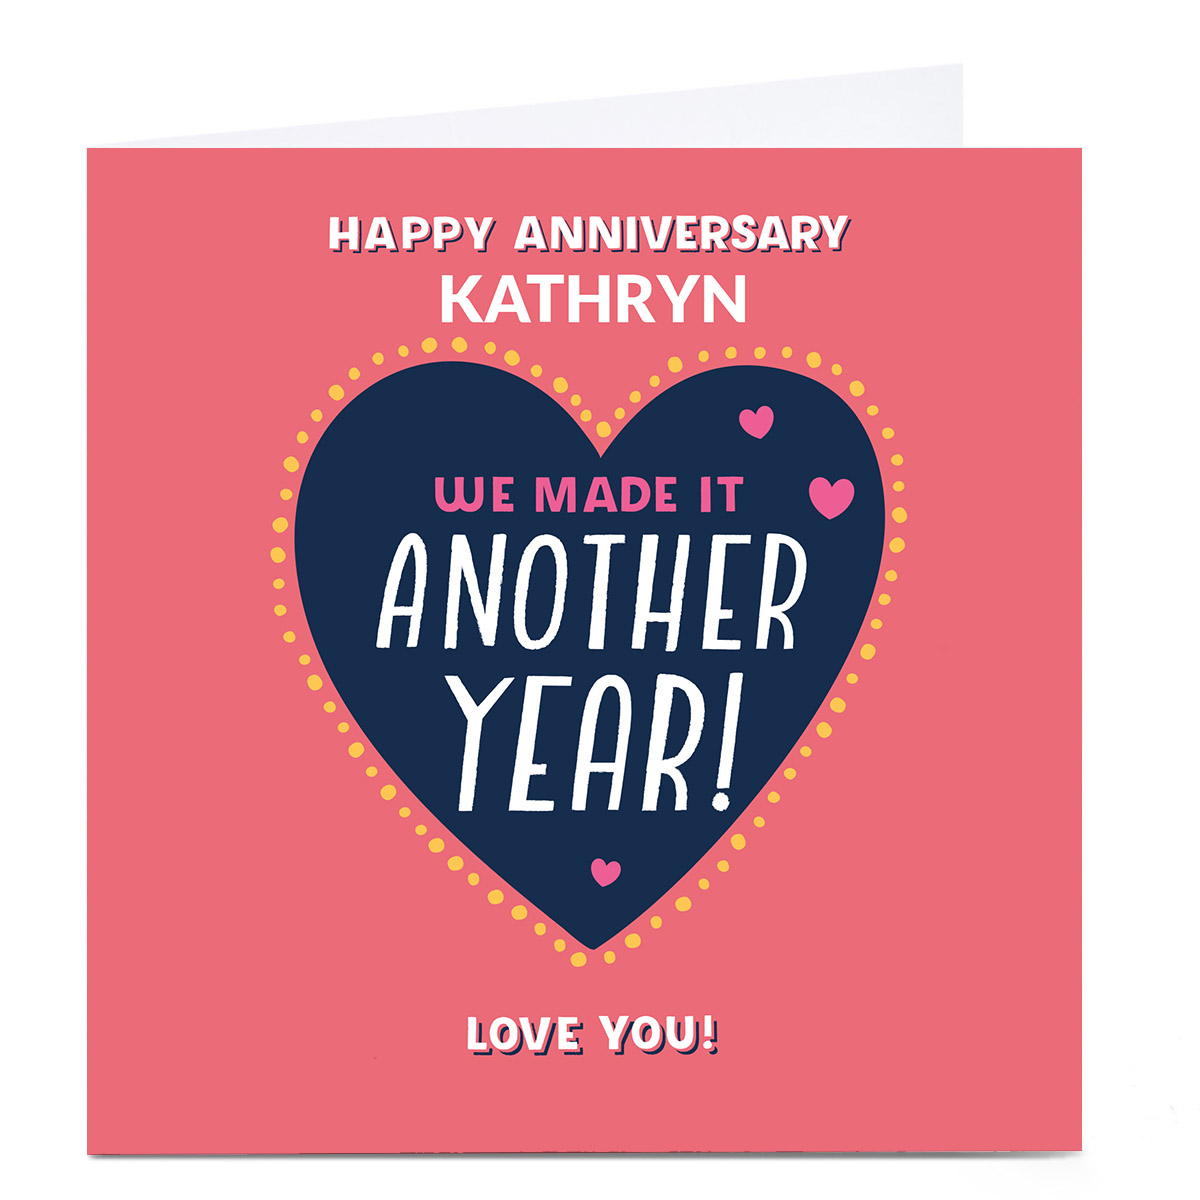 Personalised Larger than Life Anniversary Card - Another Year